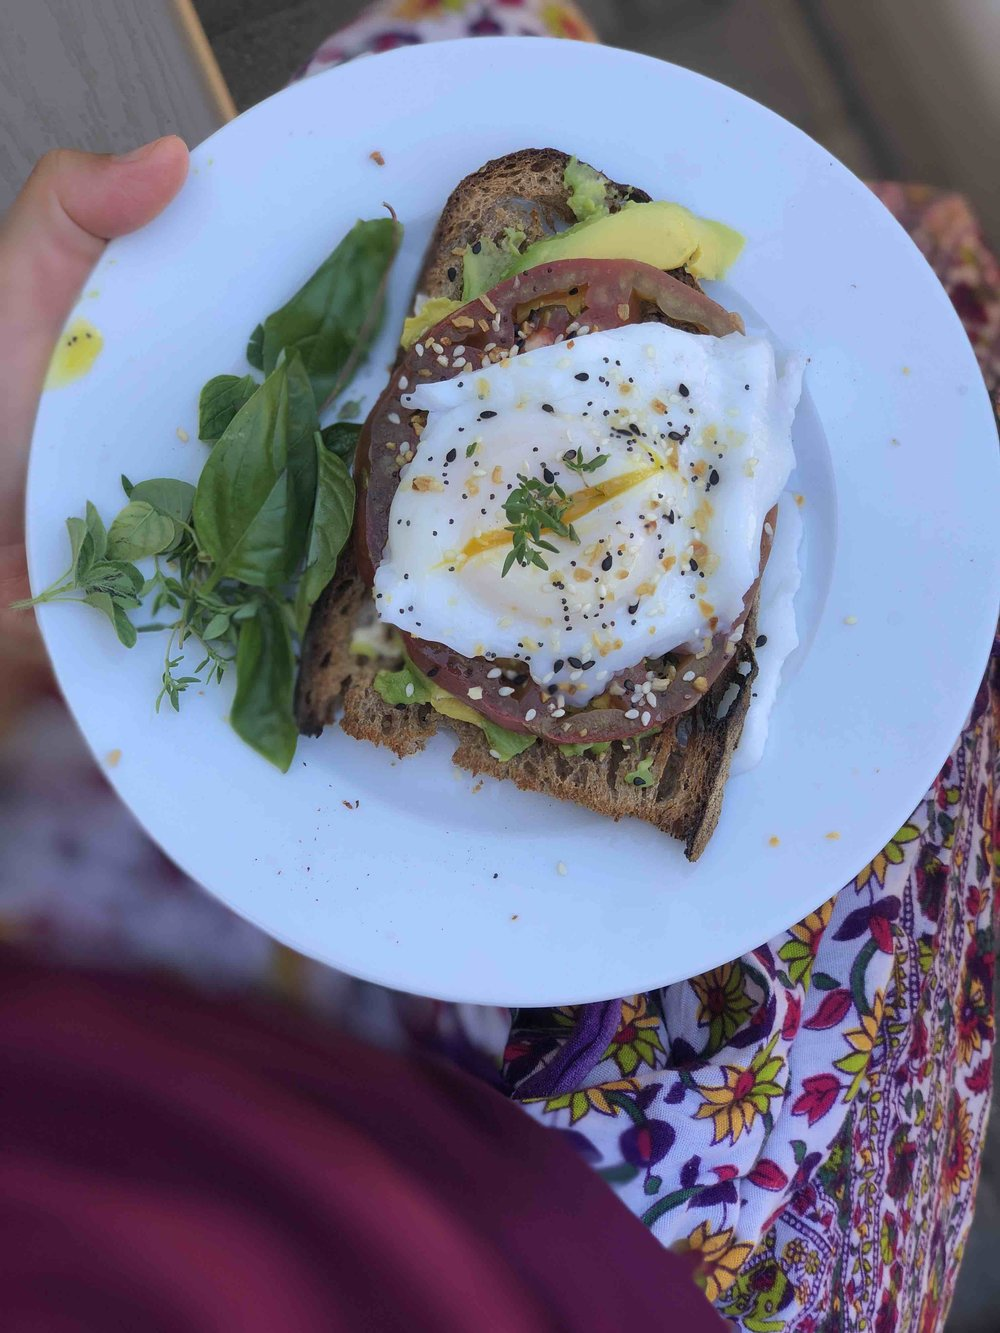 Farm Egg and avocado sourdough toast with garden herbs